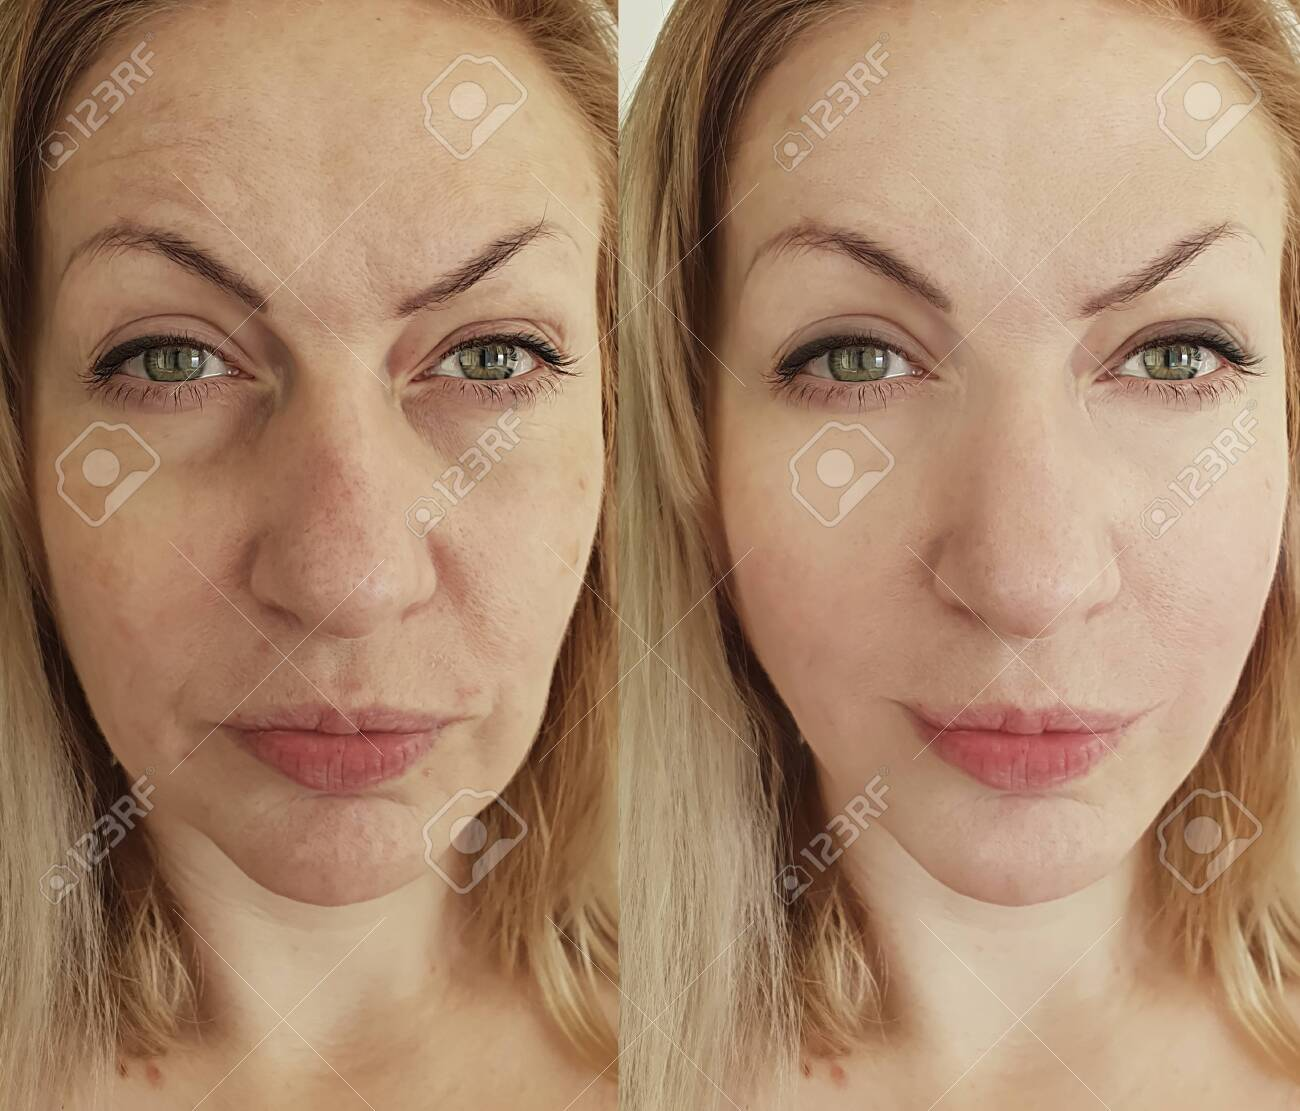 woman face wrinkles before and after treatment - 147588387